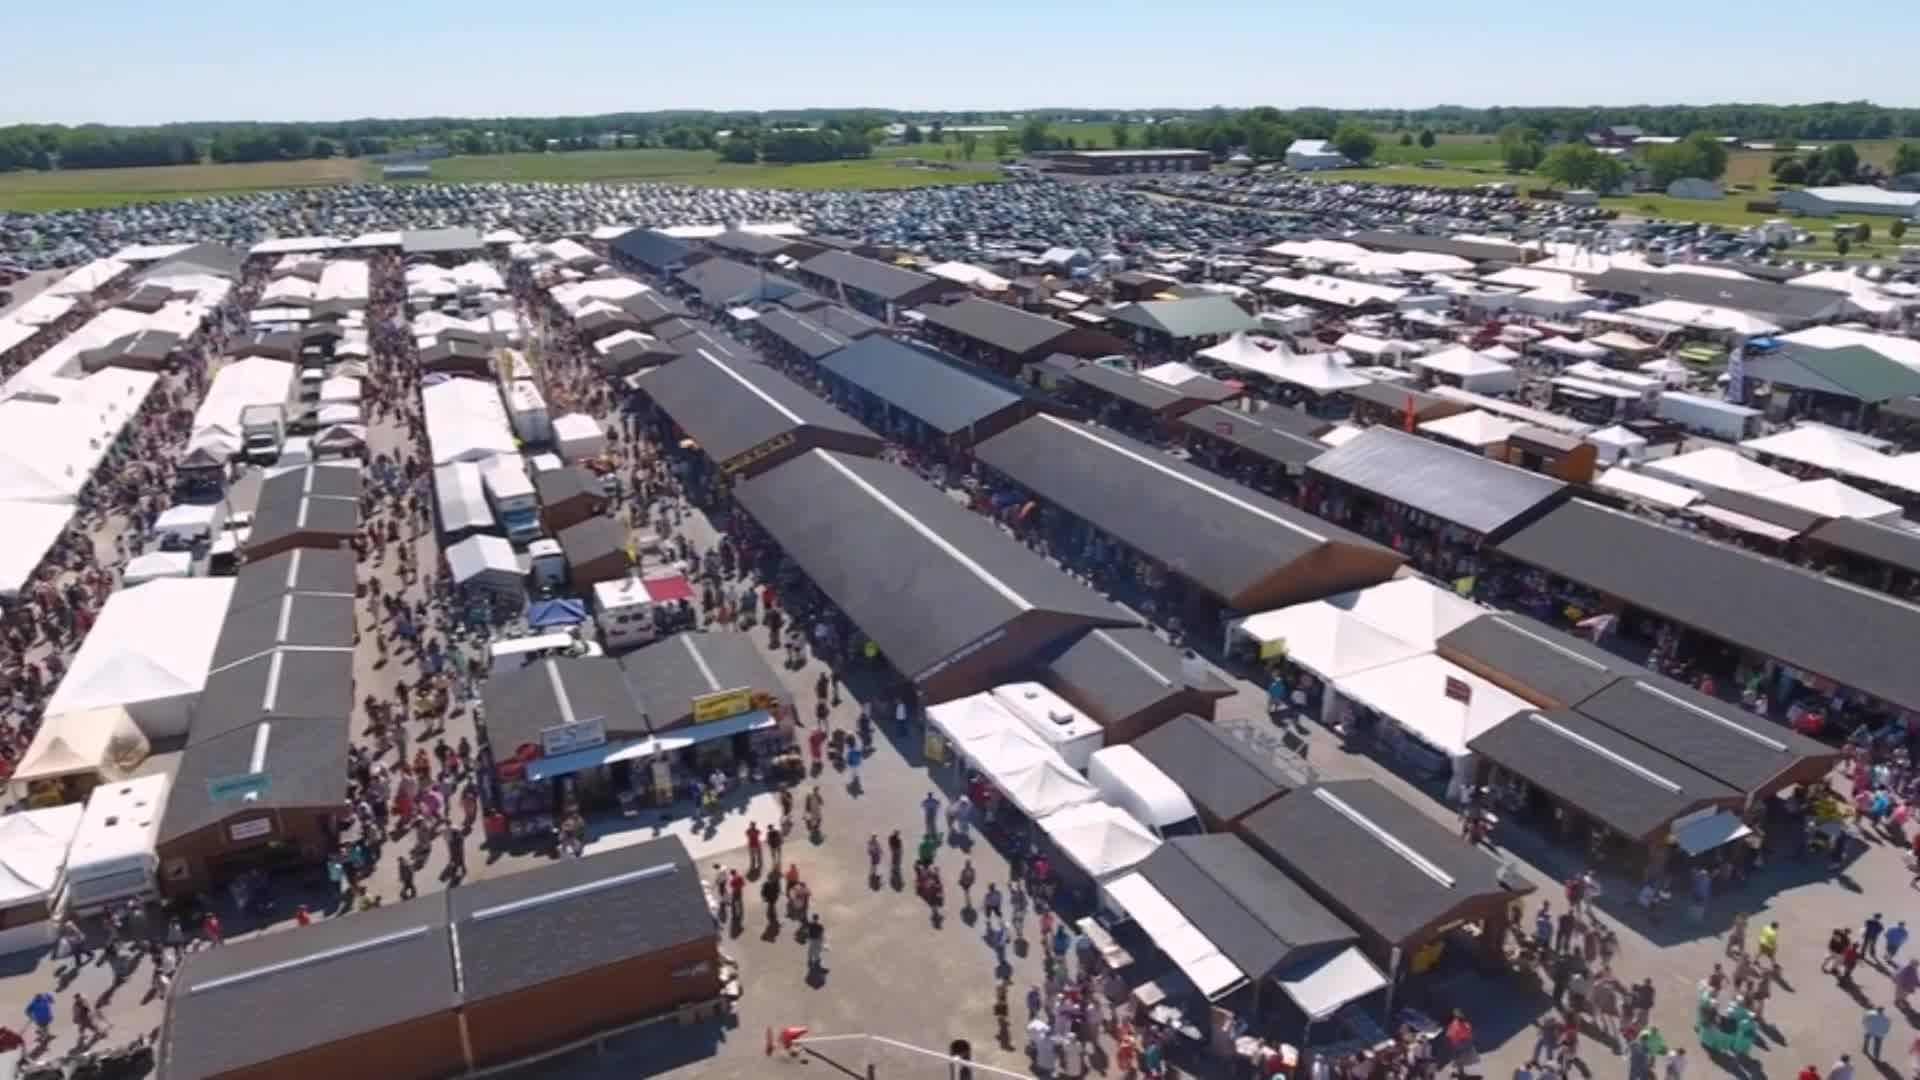 The Shipshewana Market Is The Largest Outdoor Flea Market